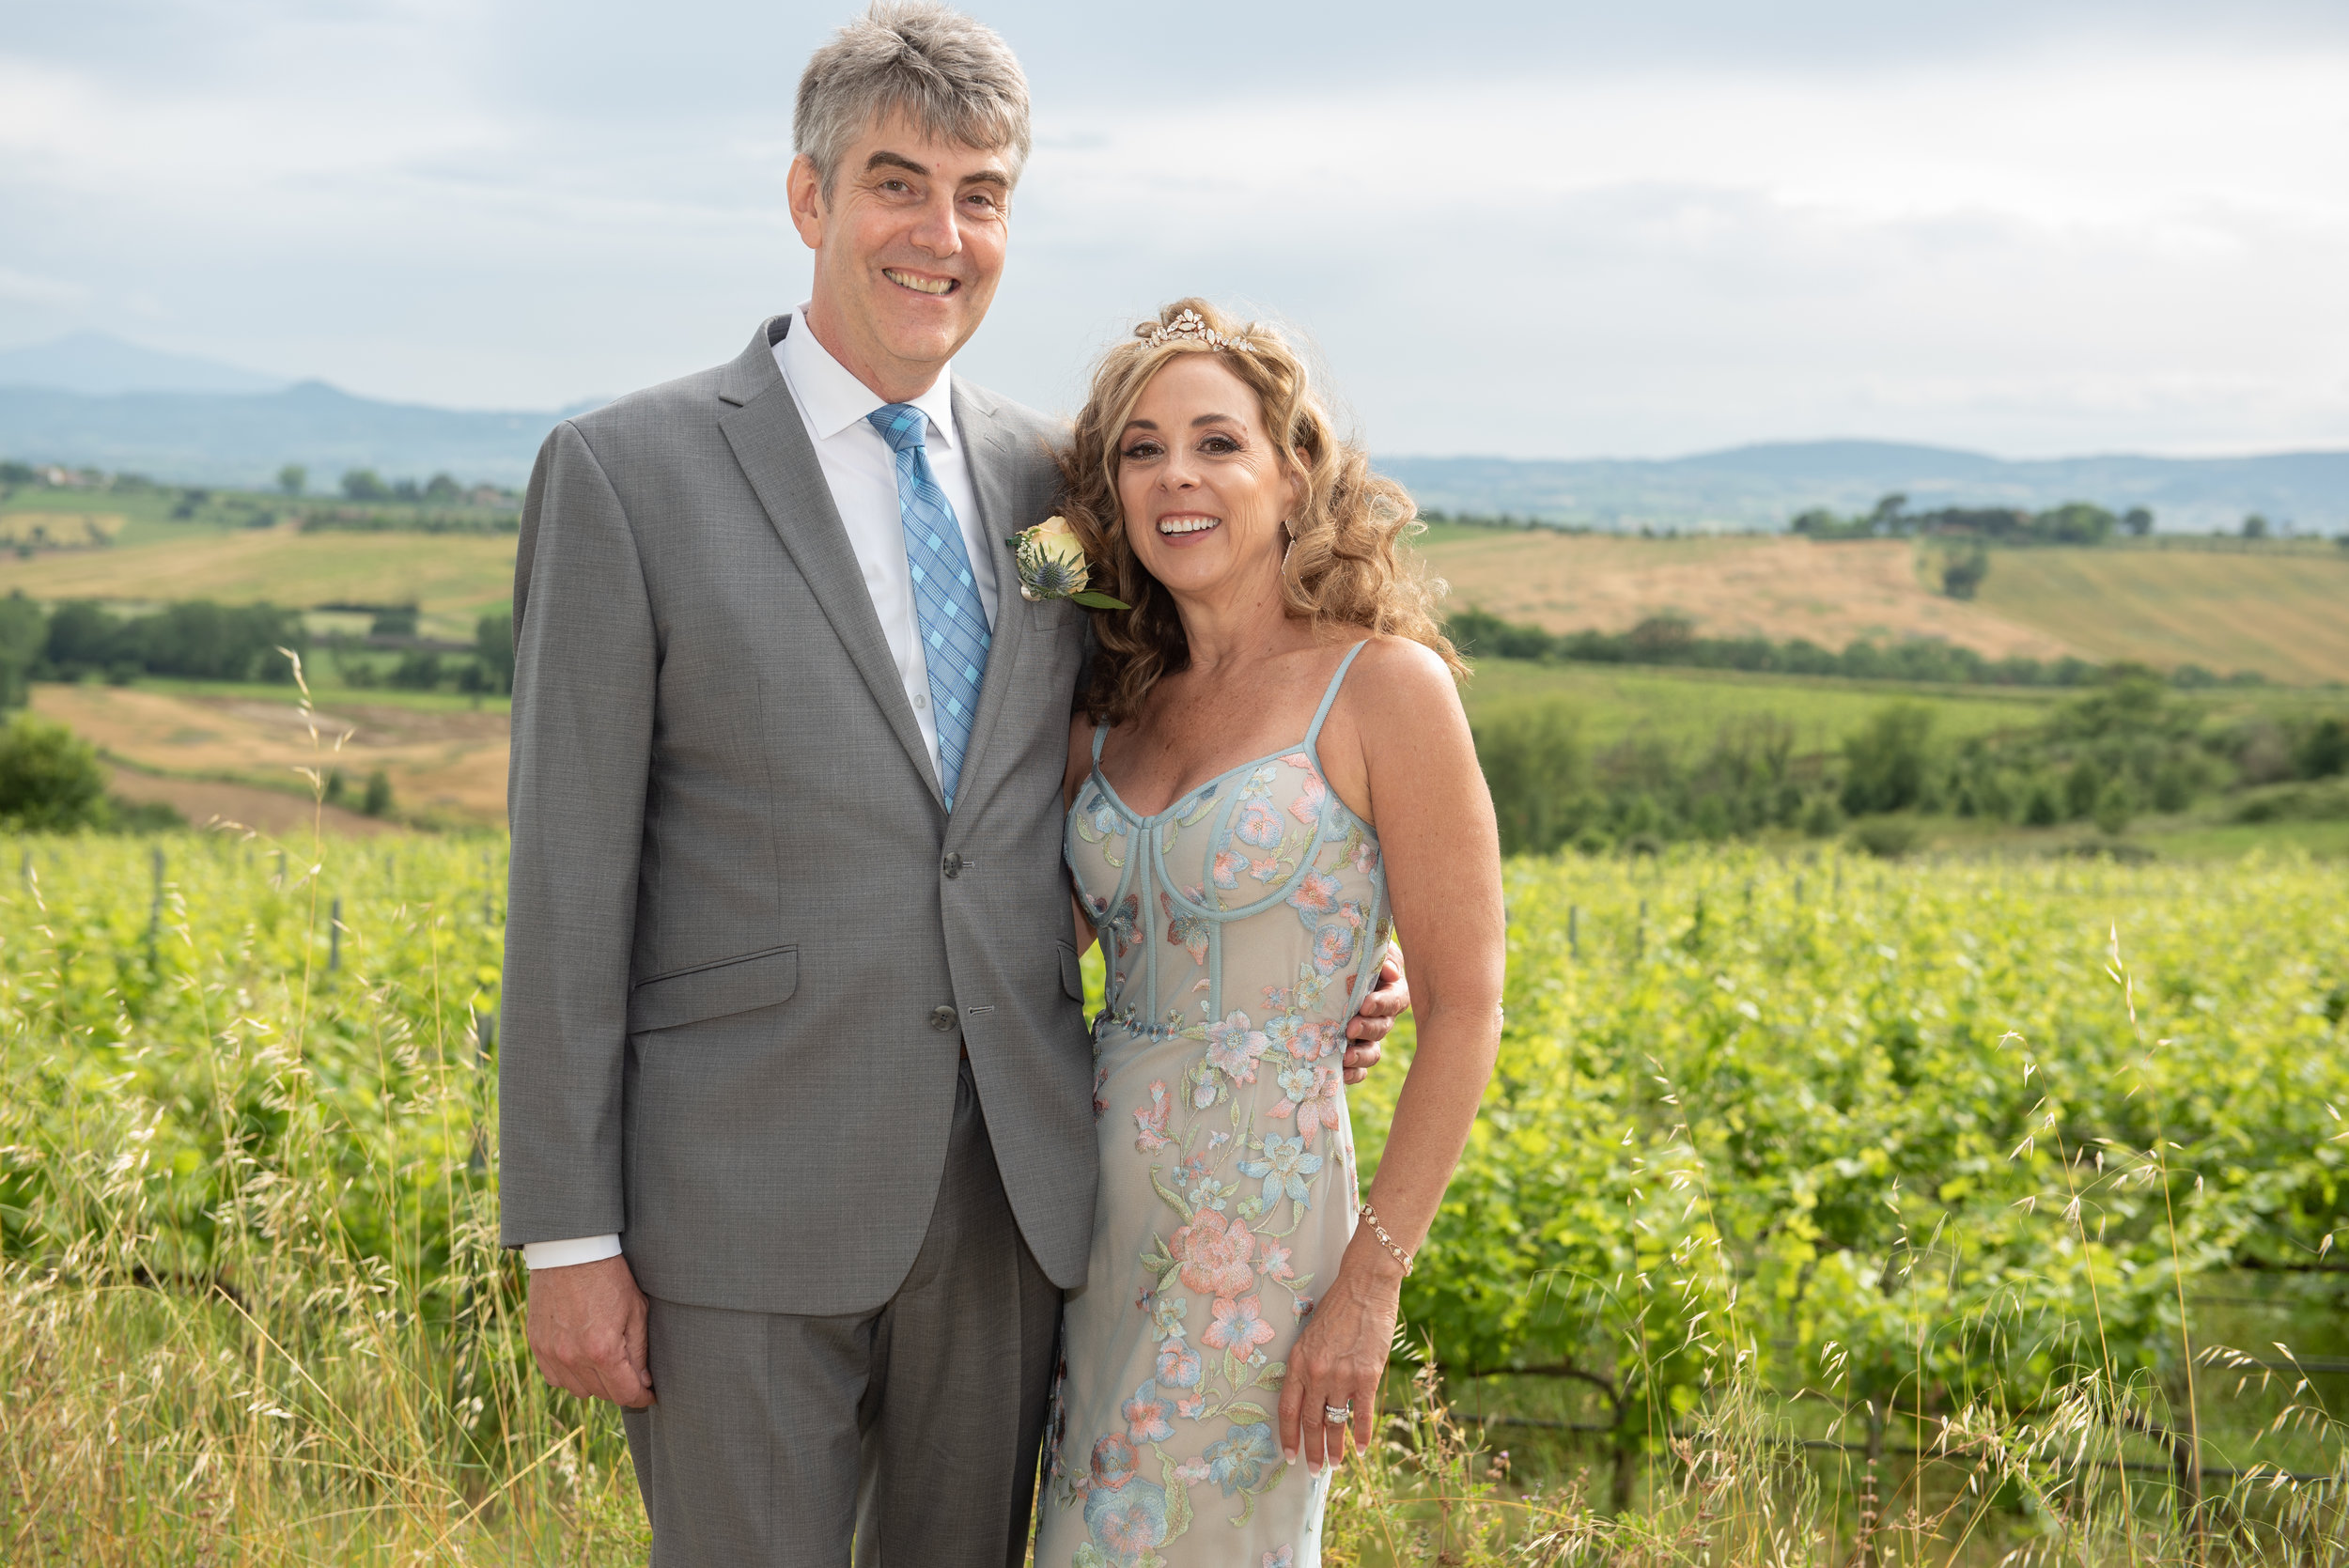 Terri & Bill, June 2018 - When you plan a wedding in another country (Italy), on a different continent, with different time zones and languages and use a wedding planner from yet a completely different country (UK) than where you are having the wedding, you really are testing the hands of fate.Our planning, from day 1, was nothing if not seamless. One thing that relieved my bridal stress was how attentive and prompt Emily was throughout the planning. Every email was returned and every silly question I asked was answered.Our Tuscan wedding was a glorious day that will live in our hearts forever.Don't be afraid to follow your dream and have a destination wedding. Having someone else take care of everything is a God-send. We are blessed, married and happily enjoying our life together as husband and wife in New Mexico. Far away from Italy, but we will have the memories forever.Thank you Emily and Annie for making our big day breathtaking.All our love, Terri & Bill